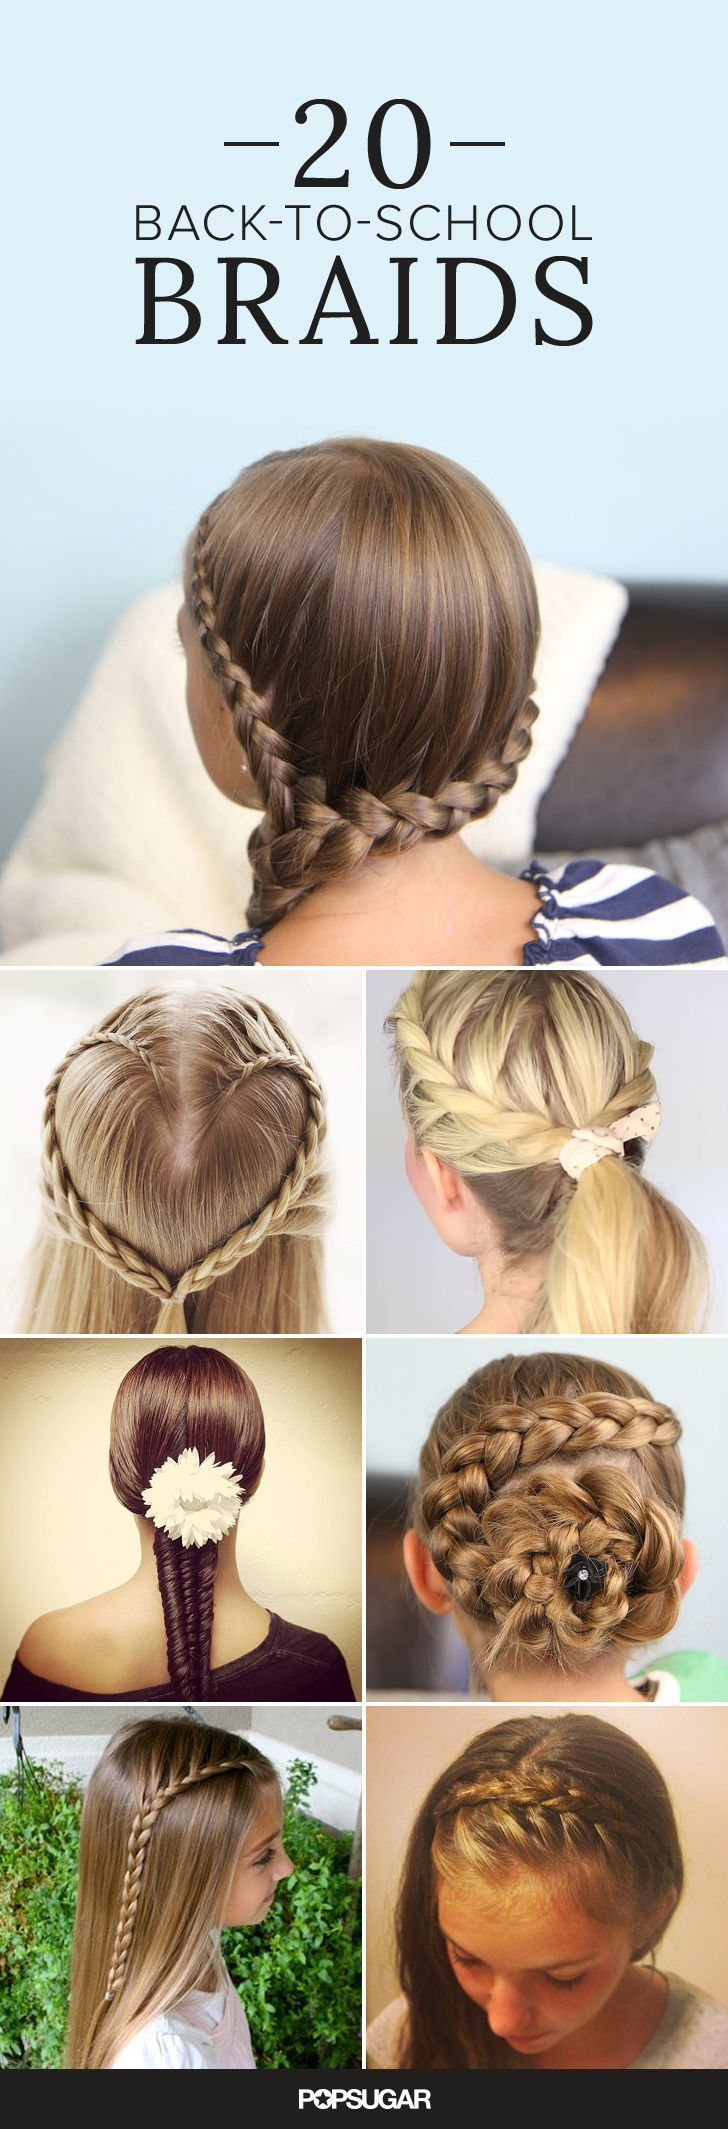 Backtoschool success guide beautiful braids for the trendy